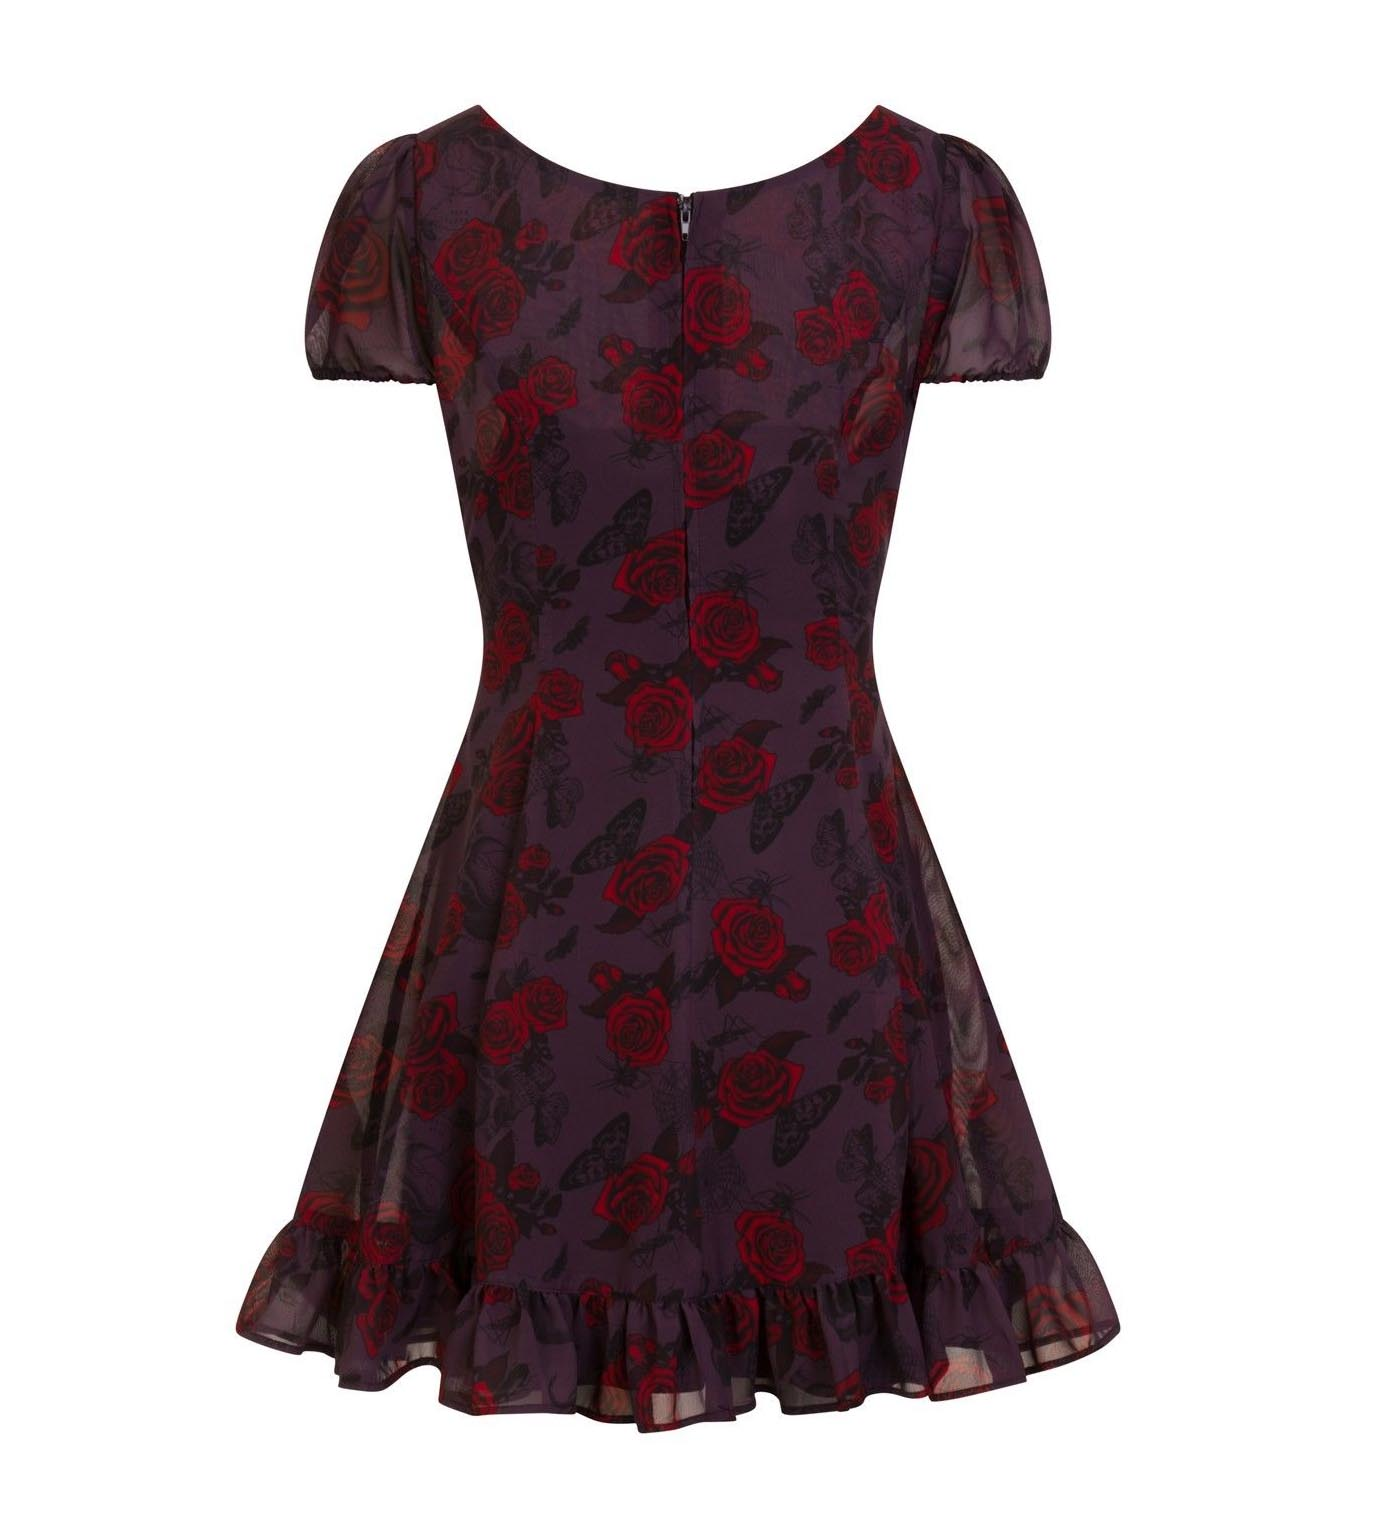 Hell-Bunny-Goth-Floaty-Mini-Dress-BUGS-amp-ROSES-Skulls-Butterfly-Purple-All-Sizes thumbnail 19